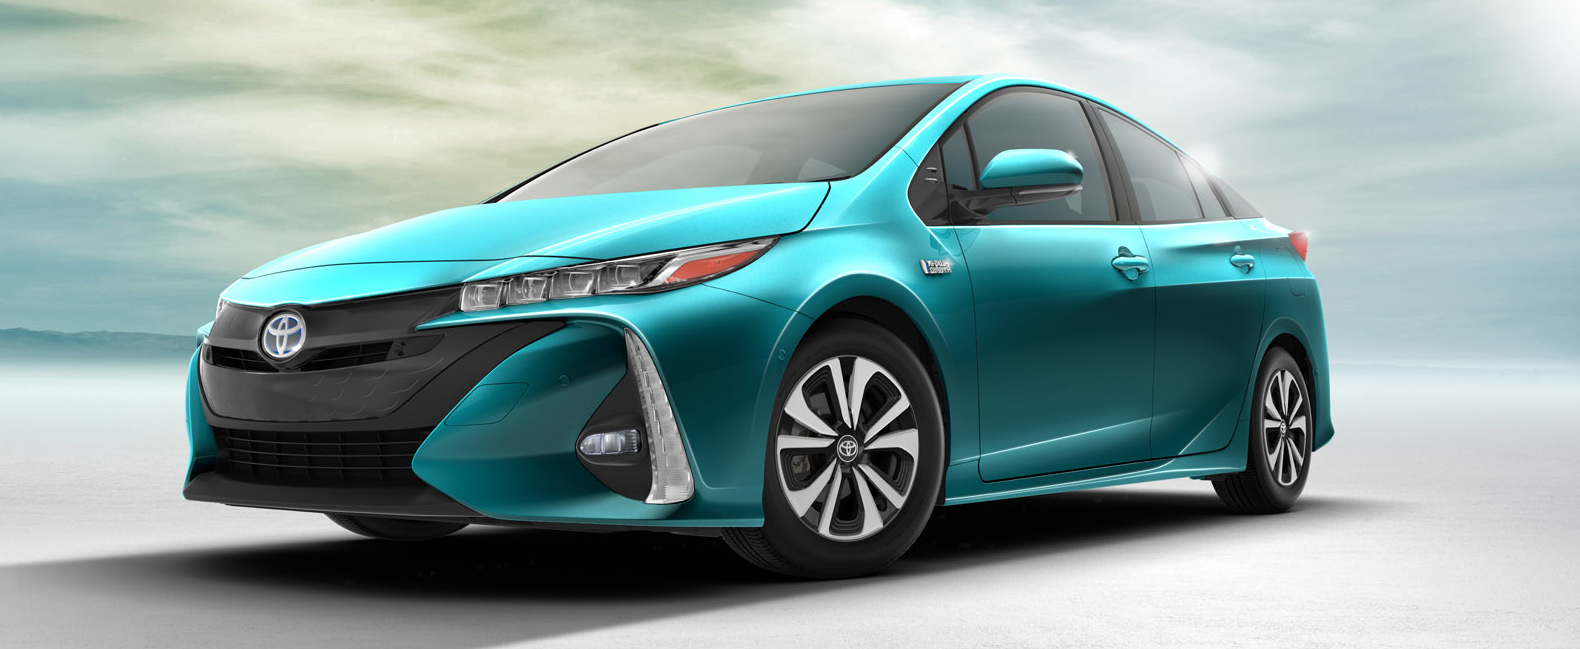 Toyota S New Prius Prime Has The World Highest Mpge For A Plug In Hybrid